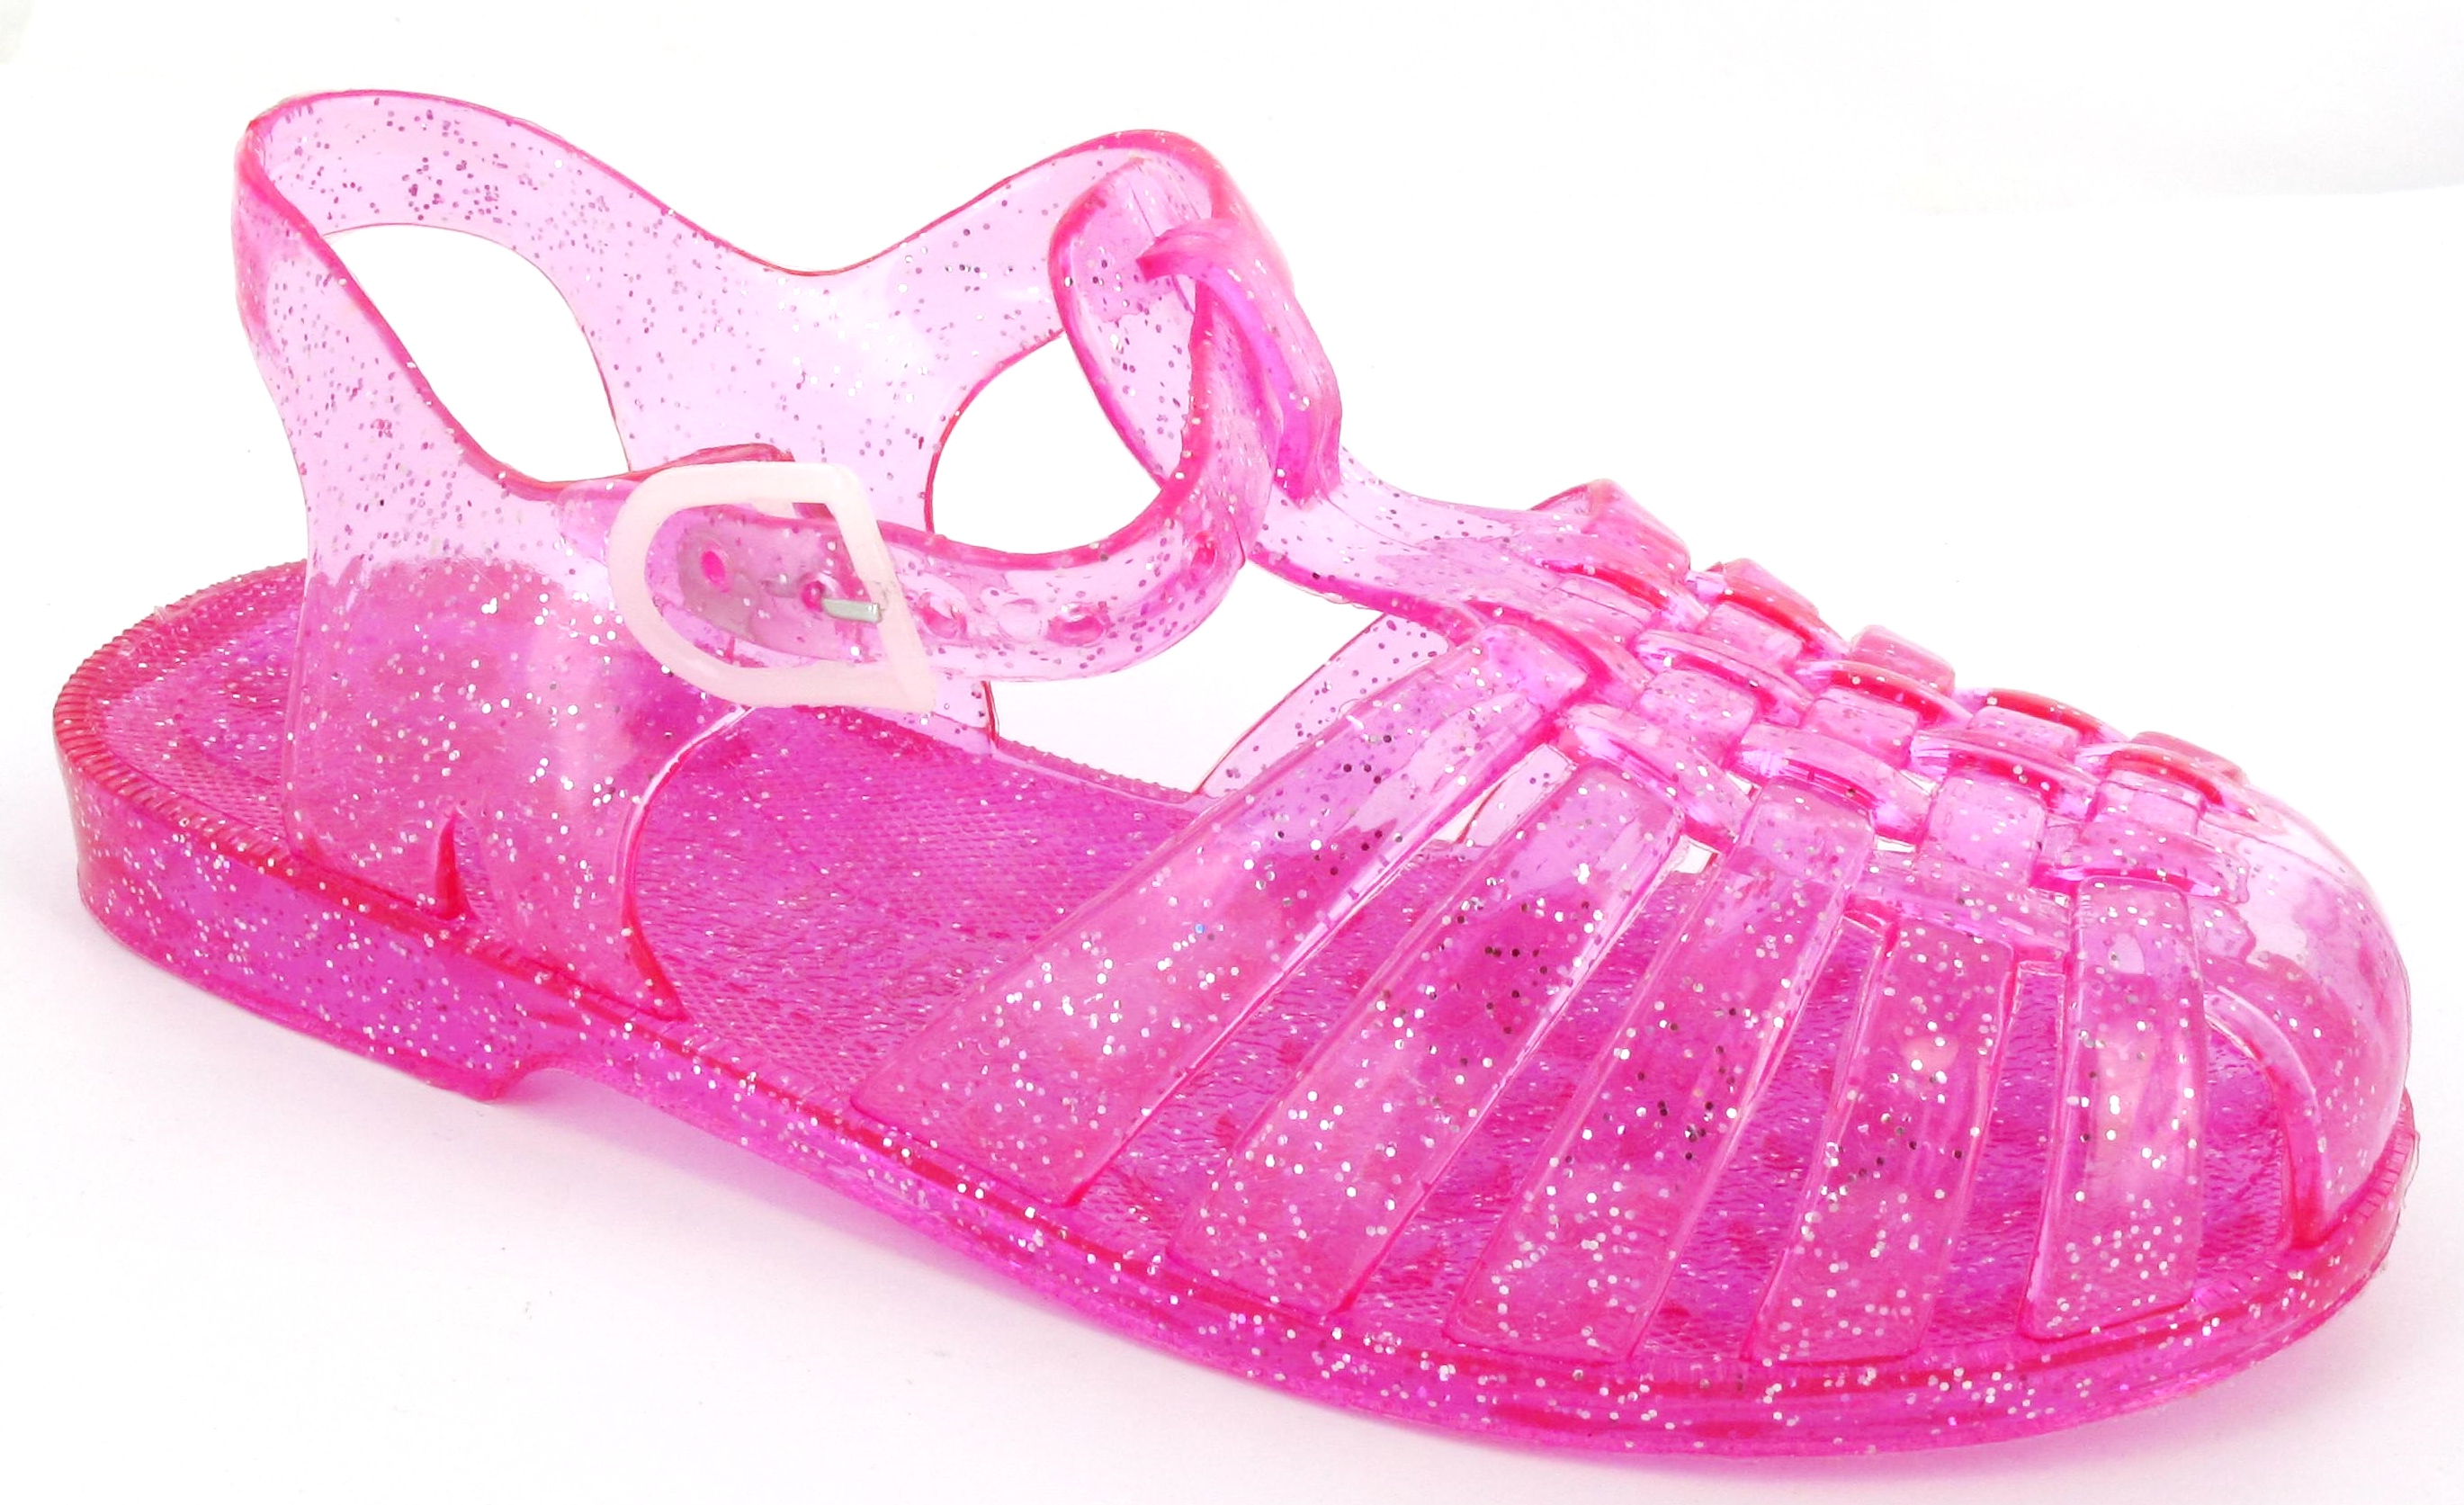 If your girl likes flip flops, for example, she might go for the Bow Jelly Flip Flop from Liv and Maddie. It's no ordinary flip flop. The fun bubblegum pink upper features a silvery bow. Also from Liv and Maddie is the Jewel 2-Band Sandal that's great for dressier occasions. One band is decorated with pretty bead and rhinestone flower accents.